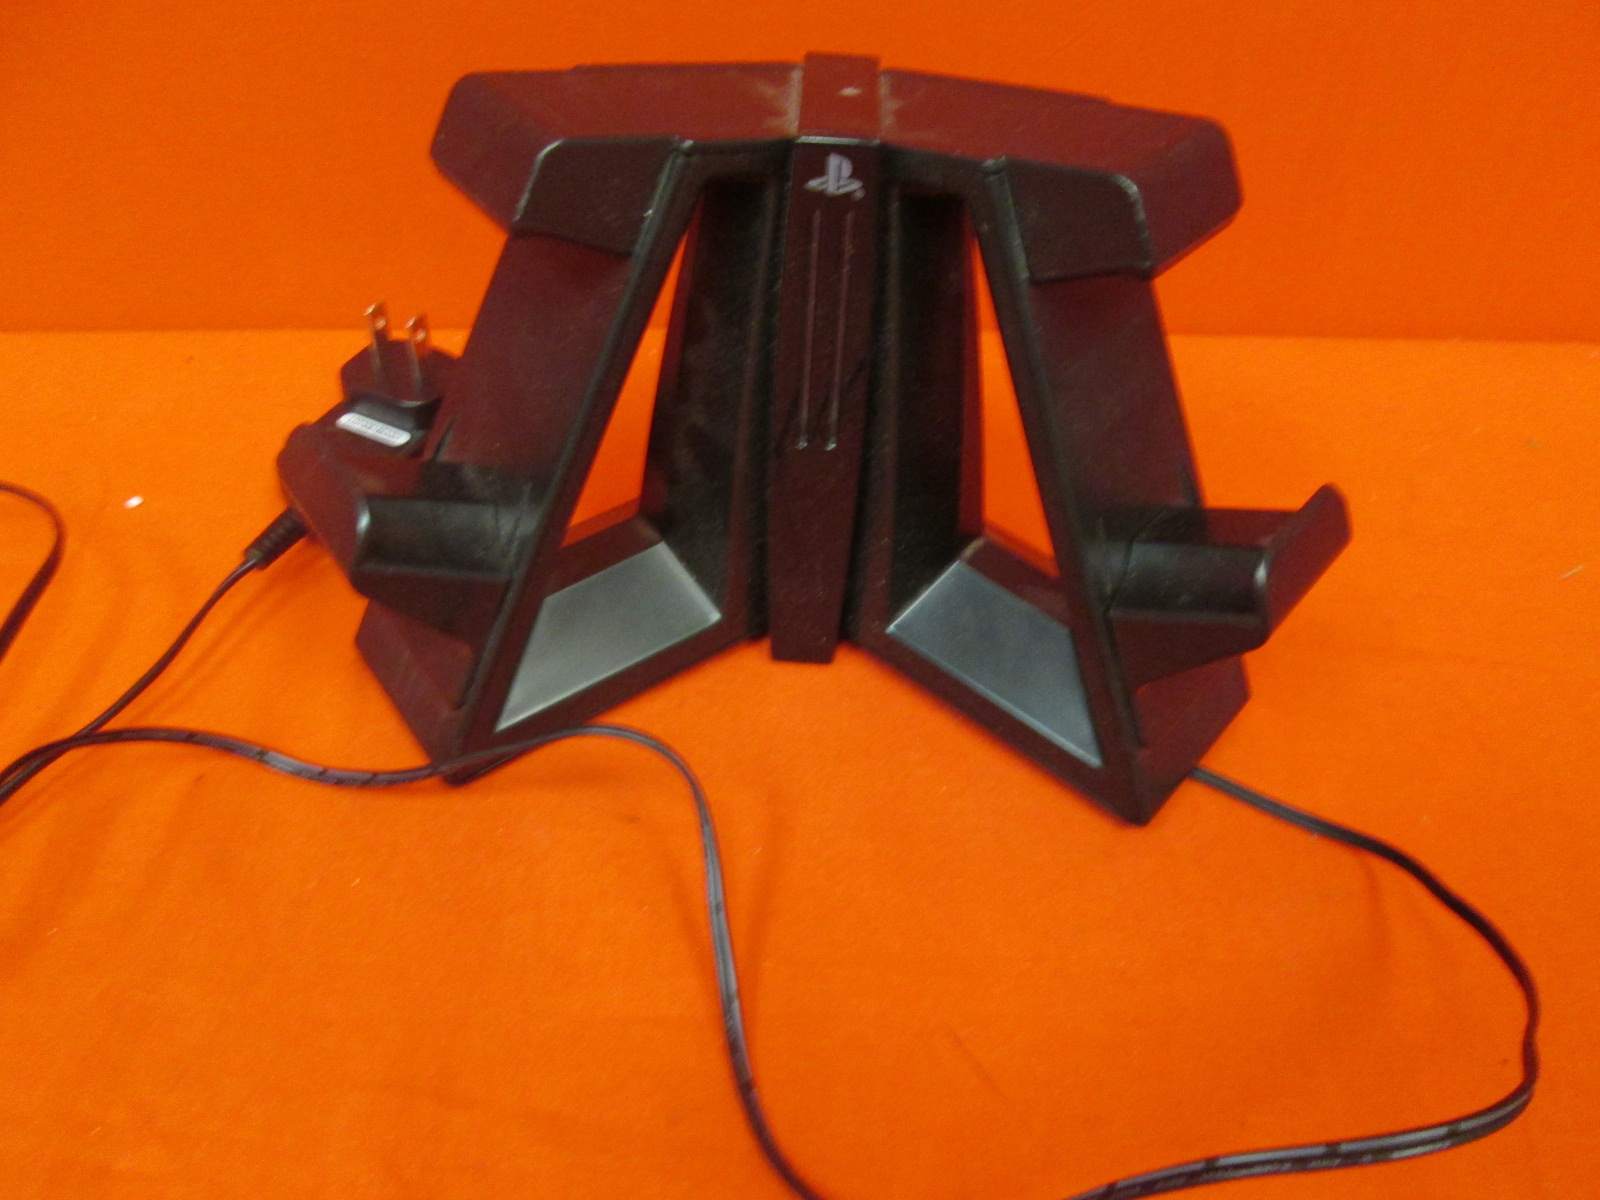 Power A Power Stand Charger For PS3 For PlayStation 3